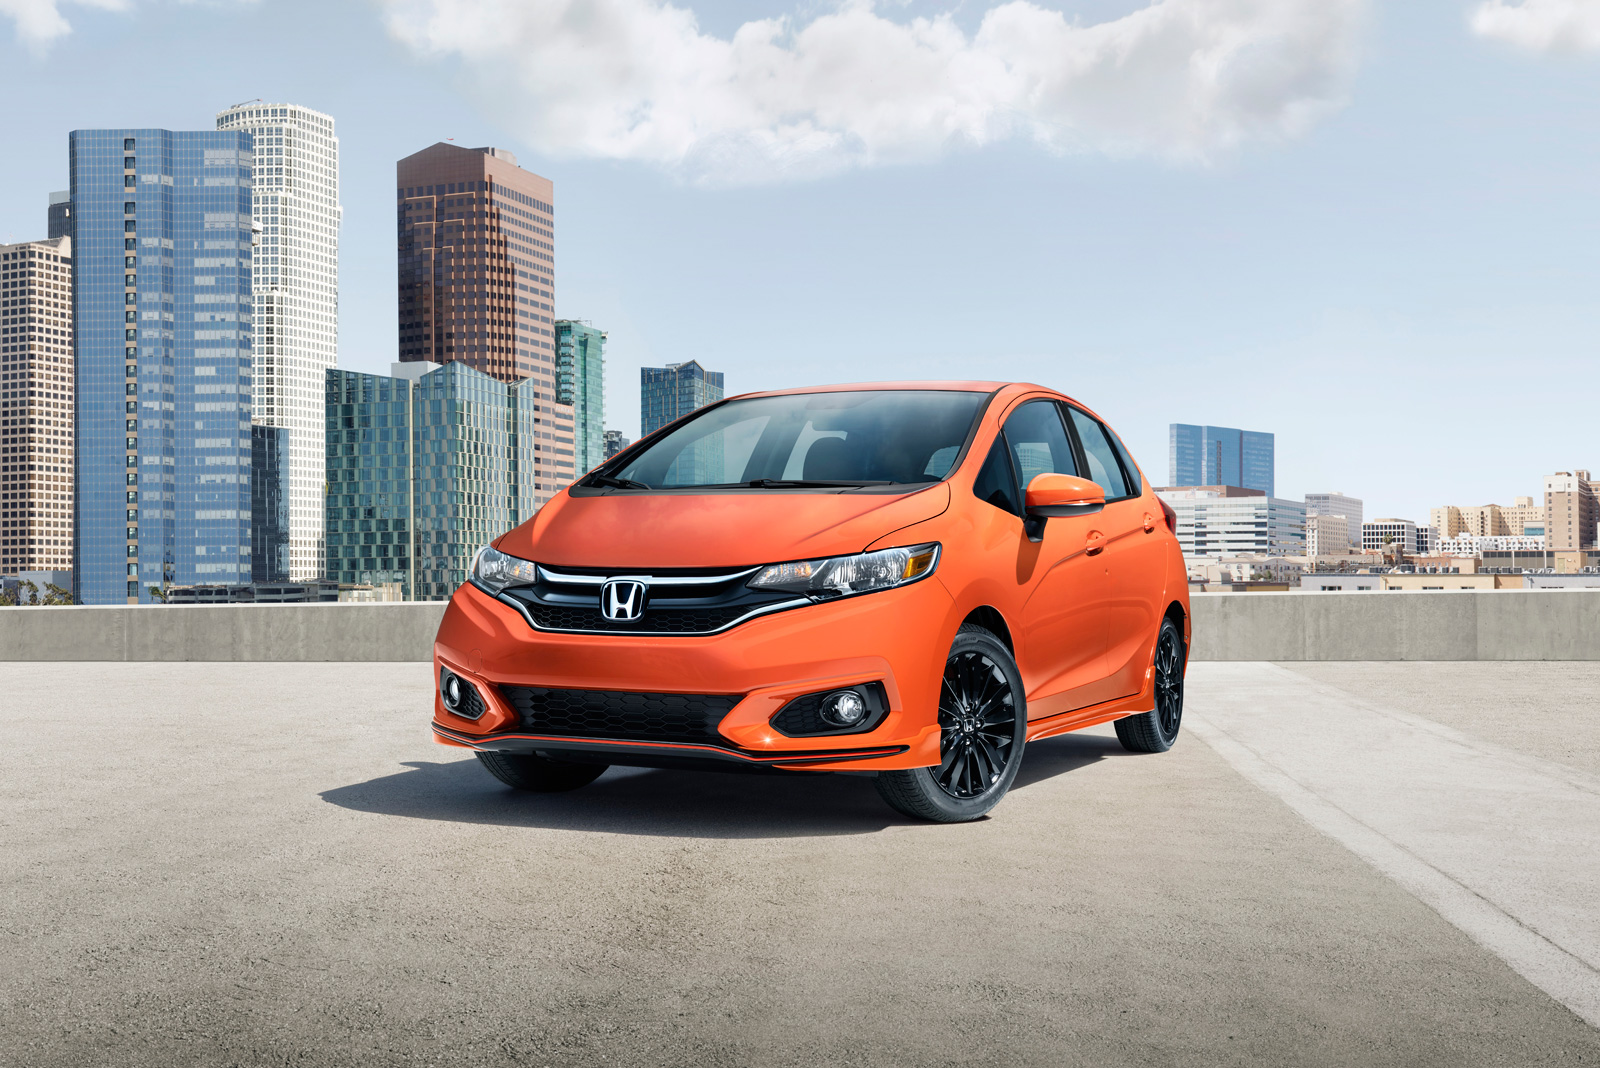 Honda Fit Updated: New colors, trim, equipment